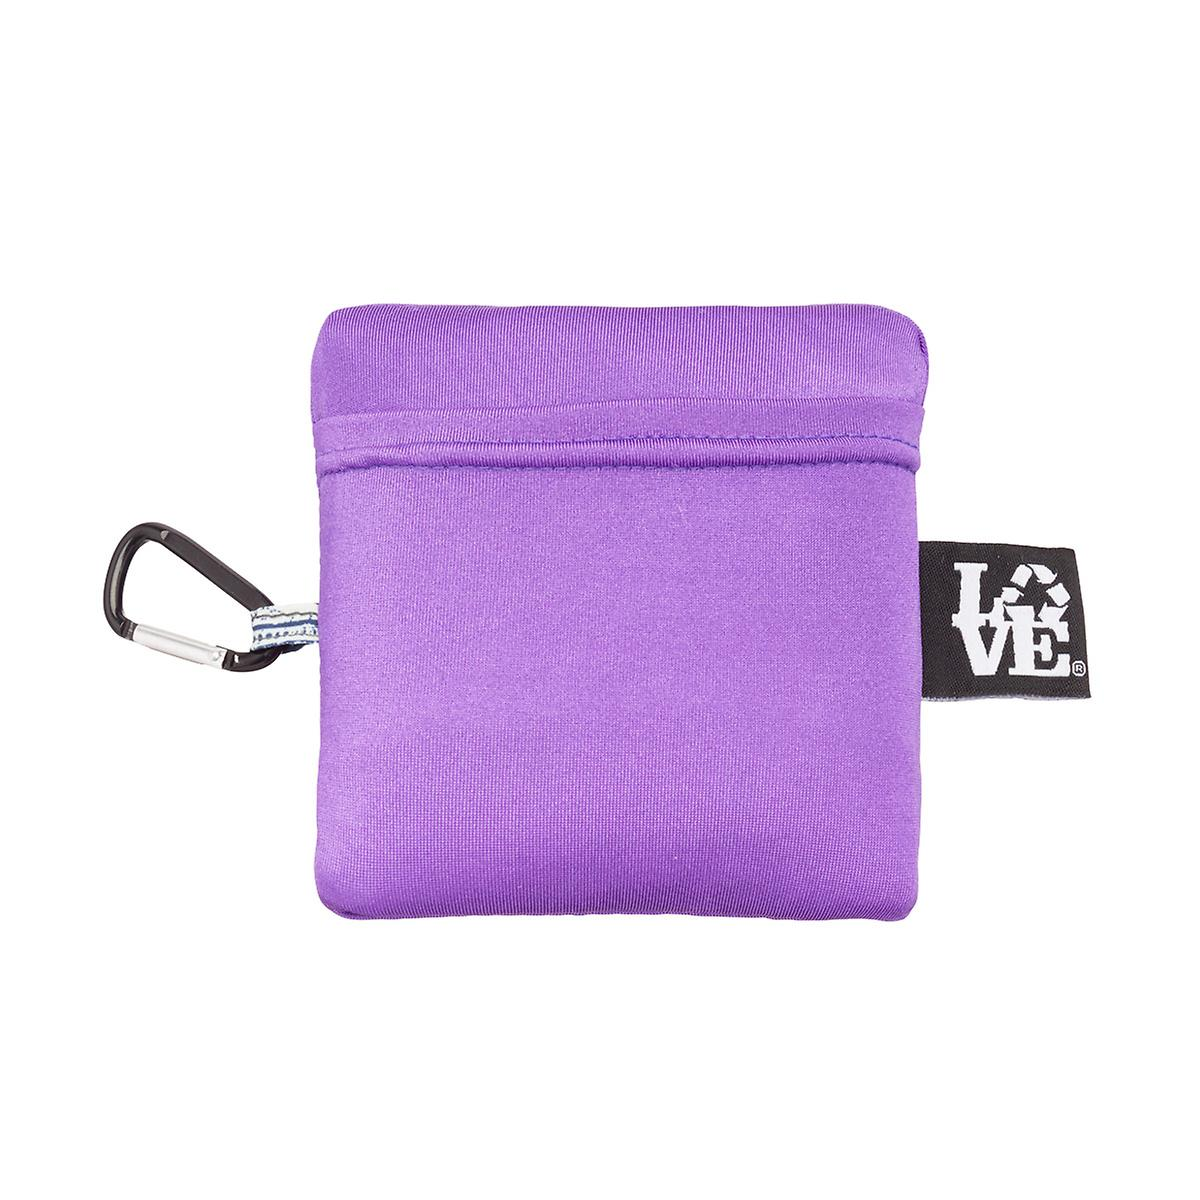 Shipping Container Bag Shop: Elephant In The Room Stash It Reusable Bag